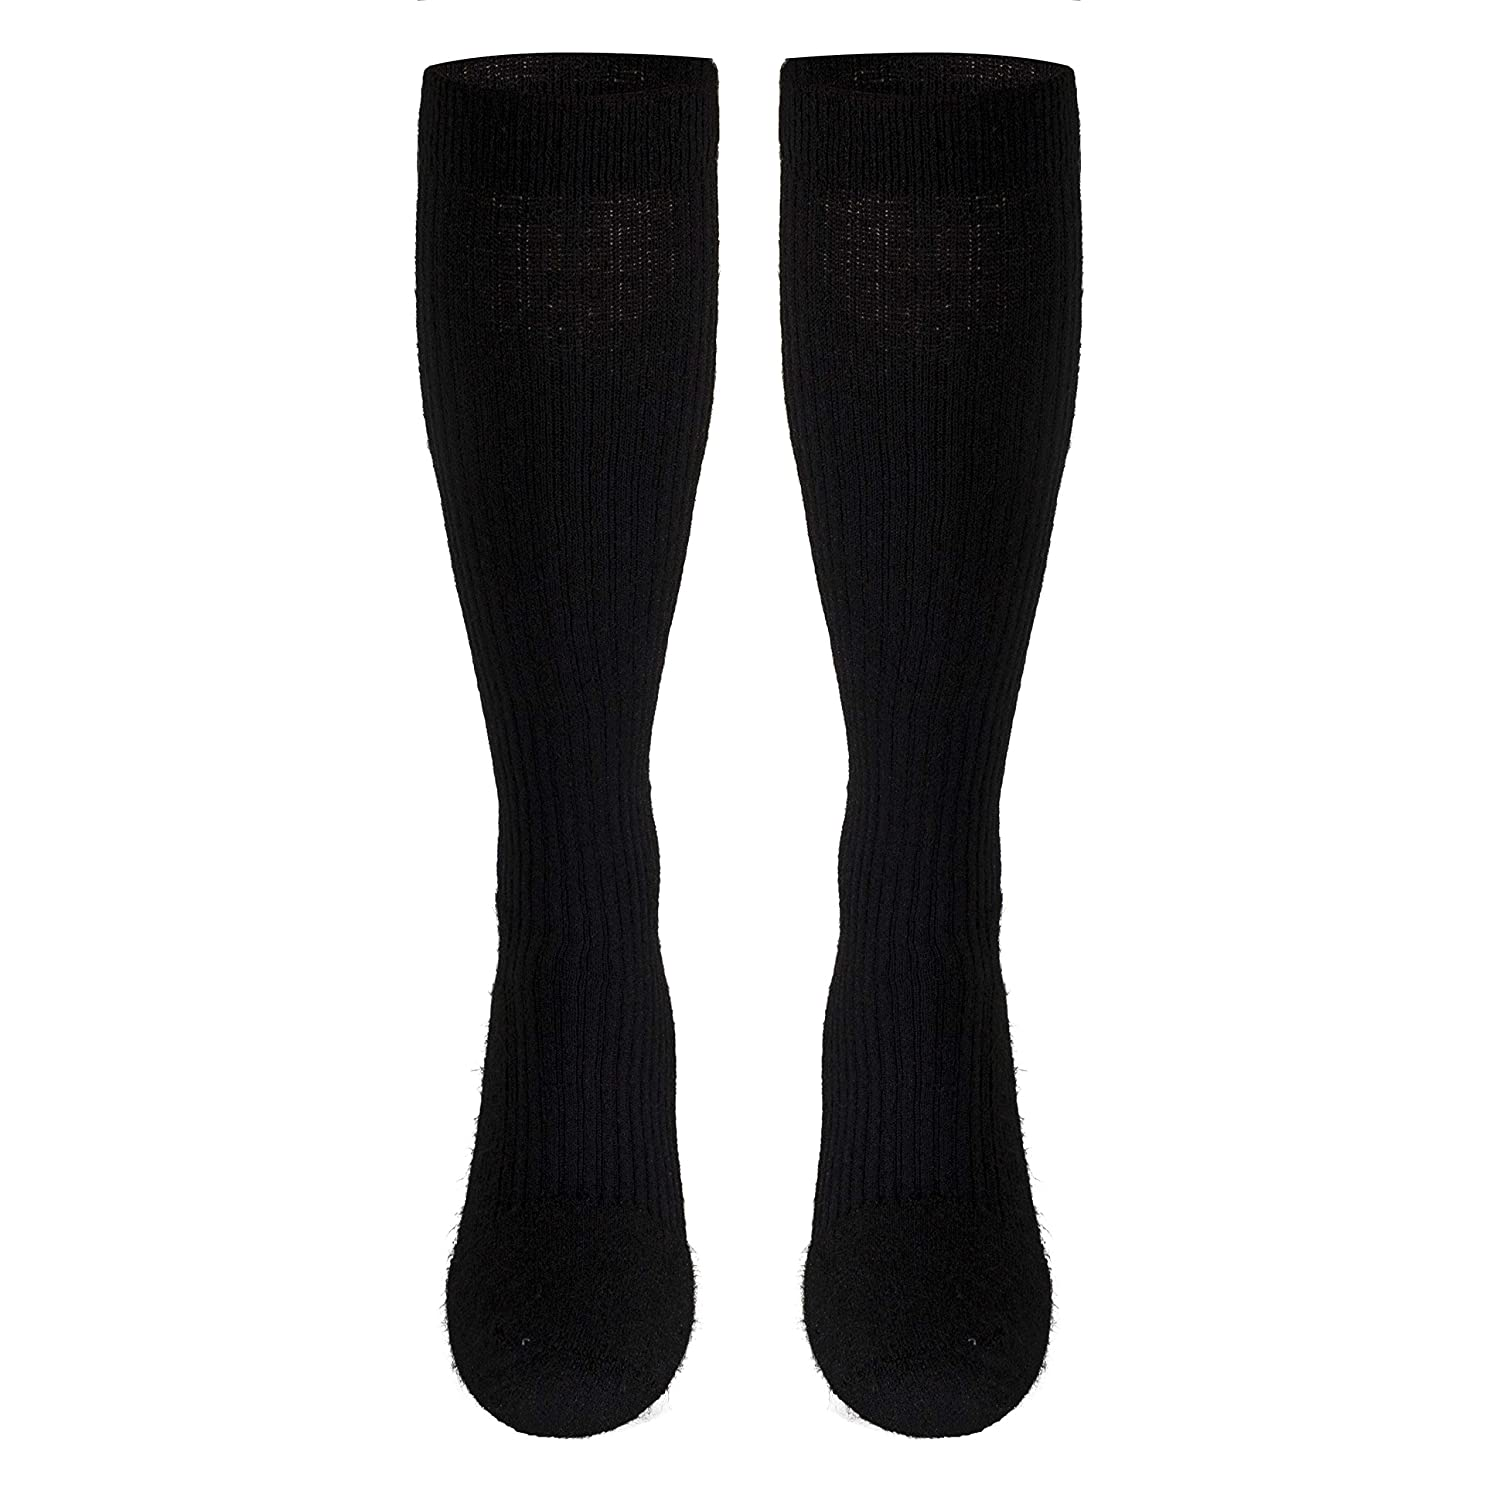 Amazon.com: Truform Compression Socks, 15-20 mmHg, Knee High, Cushion Foot, Black, Large (15-20 mmHg): Health & Personal Care